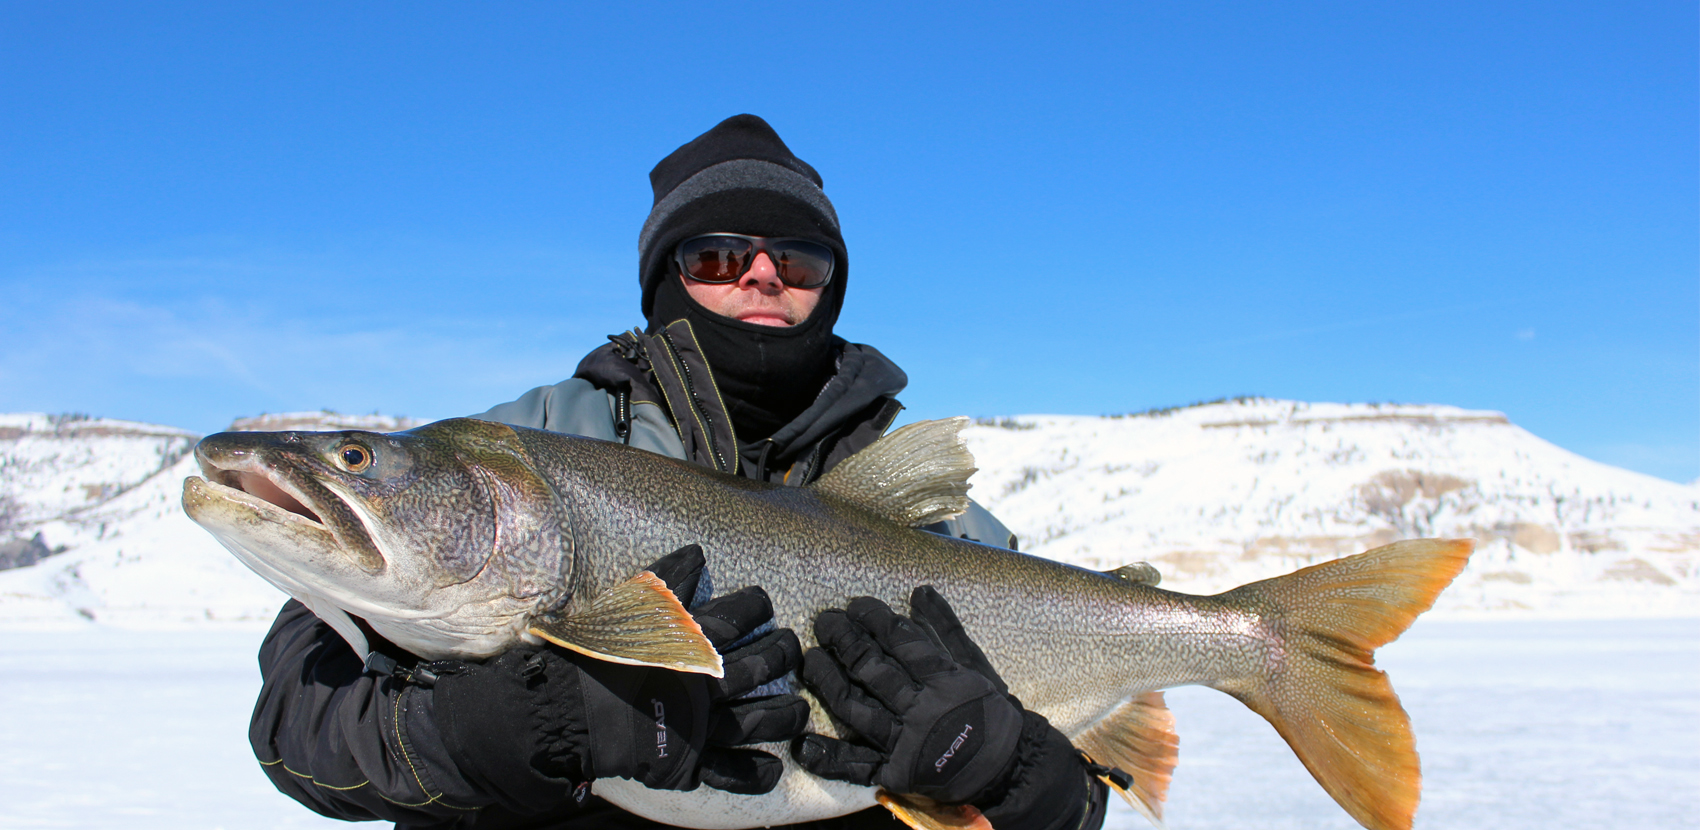 Antero blue mesa reservoir 11 mile colorado ice fishing for 11 mile fishing report